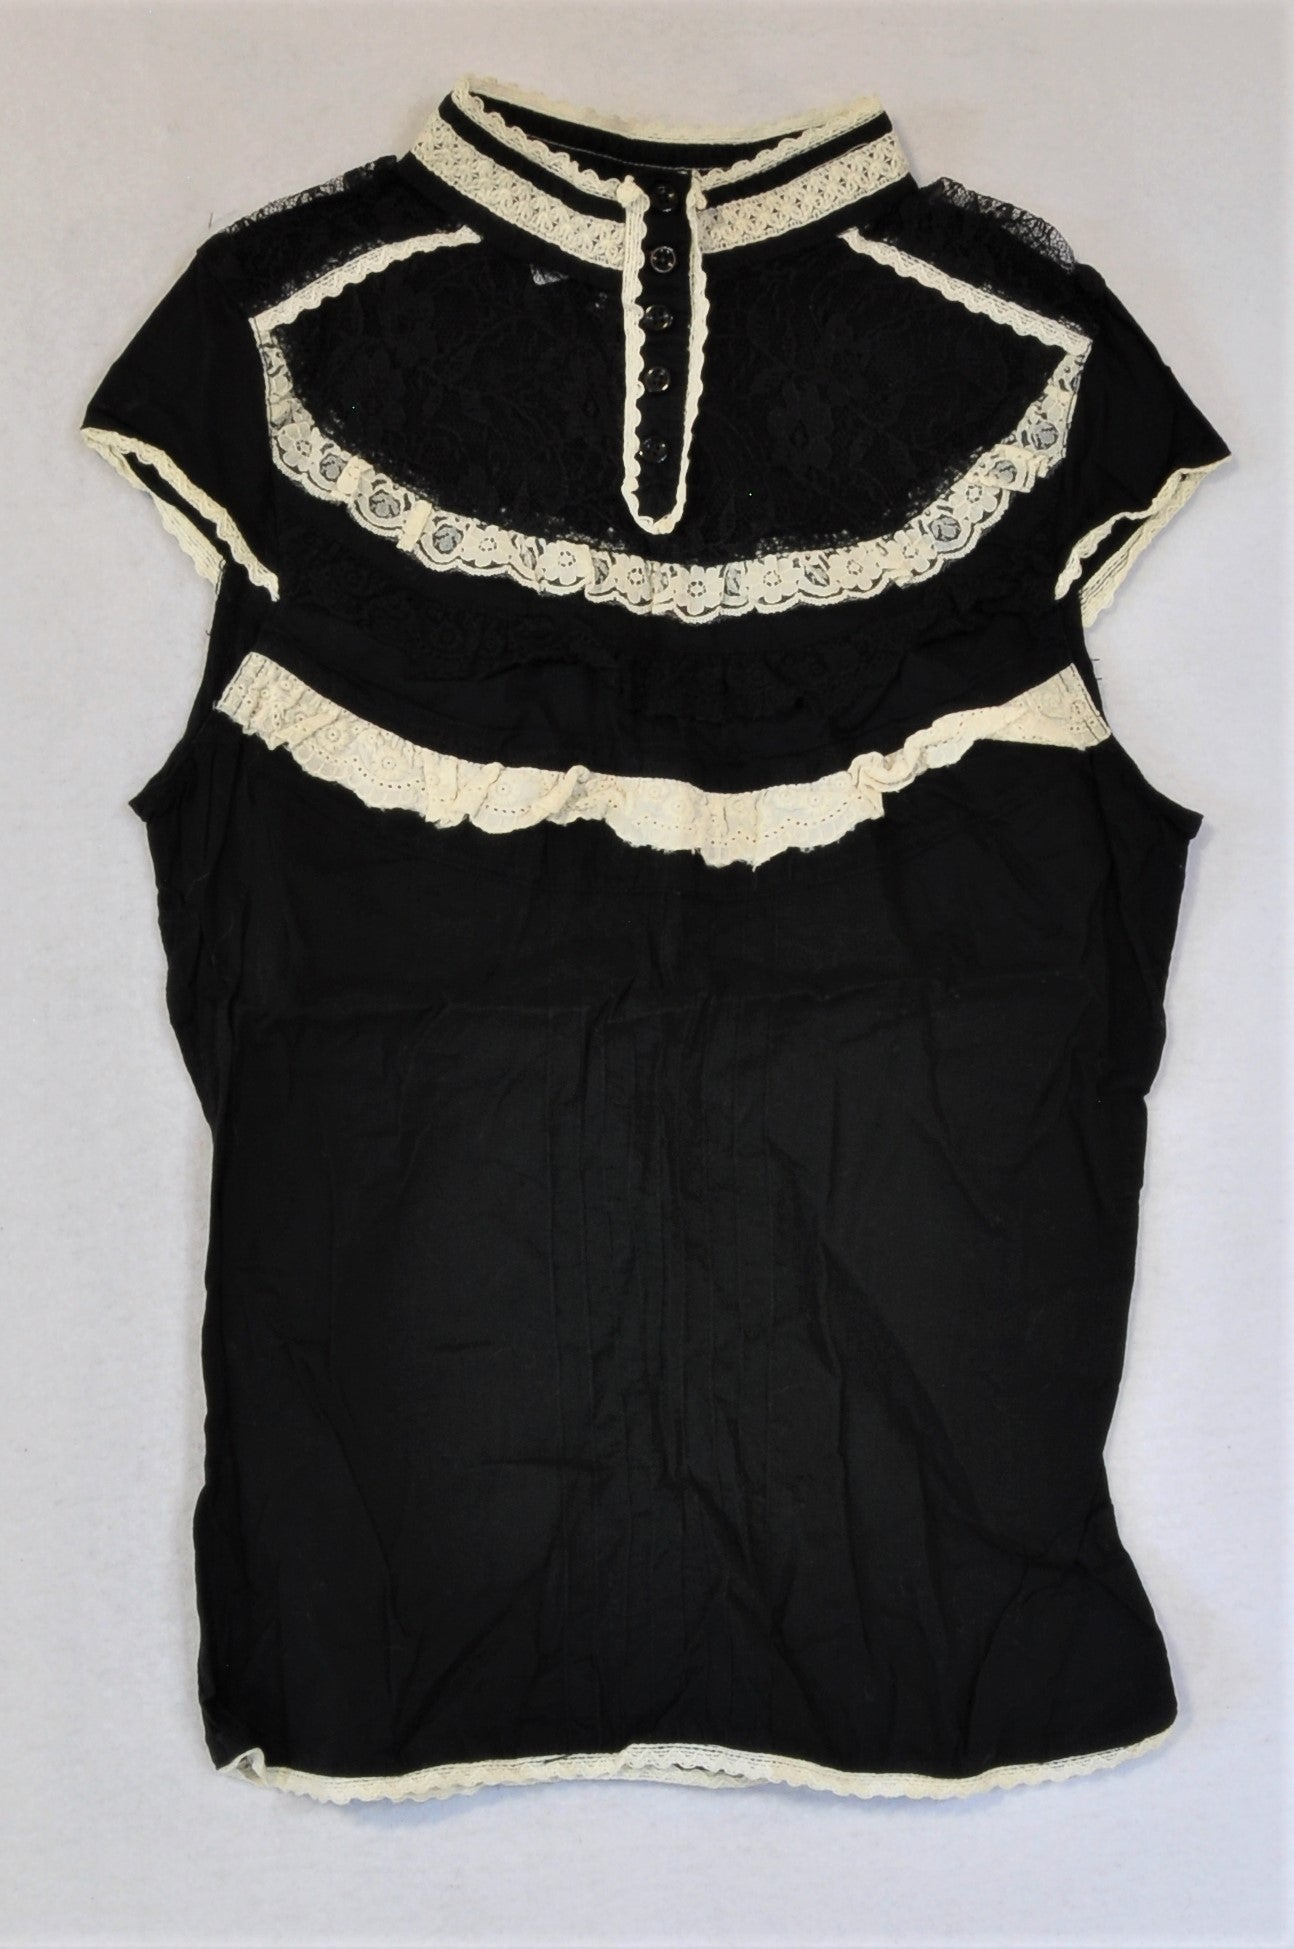 H&M Black With Lace Detail Blouse Women Size XS